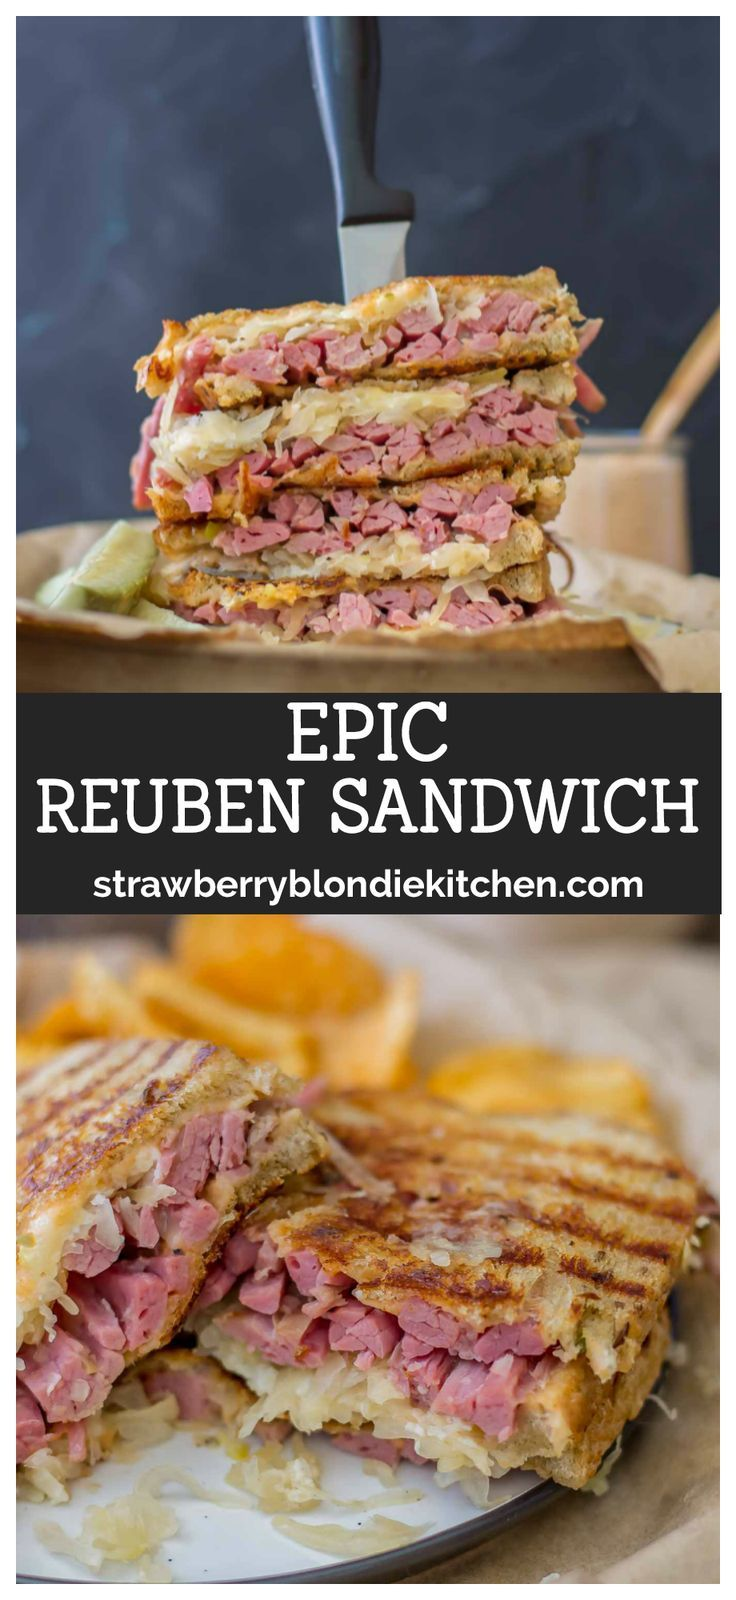 This Epic Reuben Sandwich features layers of tender corned beef, tangy sauerkraut, sharp and creamy fontina andRussian dressing, grilled between slices of seeded rye bread. The onlyReuben Sandwich recipe you'll ever need! #cornedbeef #sandwich #sandwichrecipe #stpatricksday #reuben #reubensandwich #reubenrecipe #irishfood #irishrecipes #stpatricksdayfood